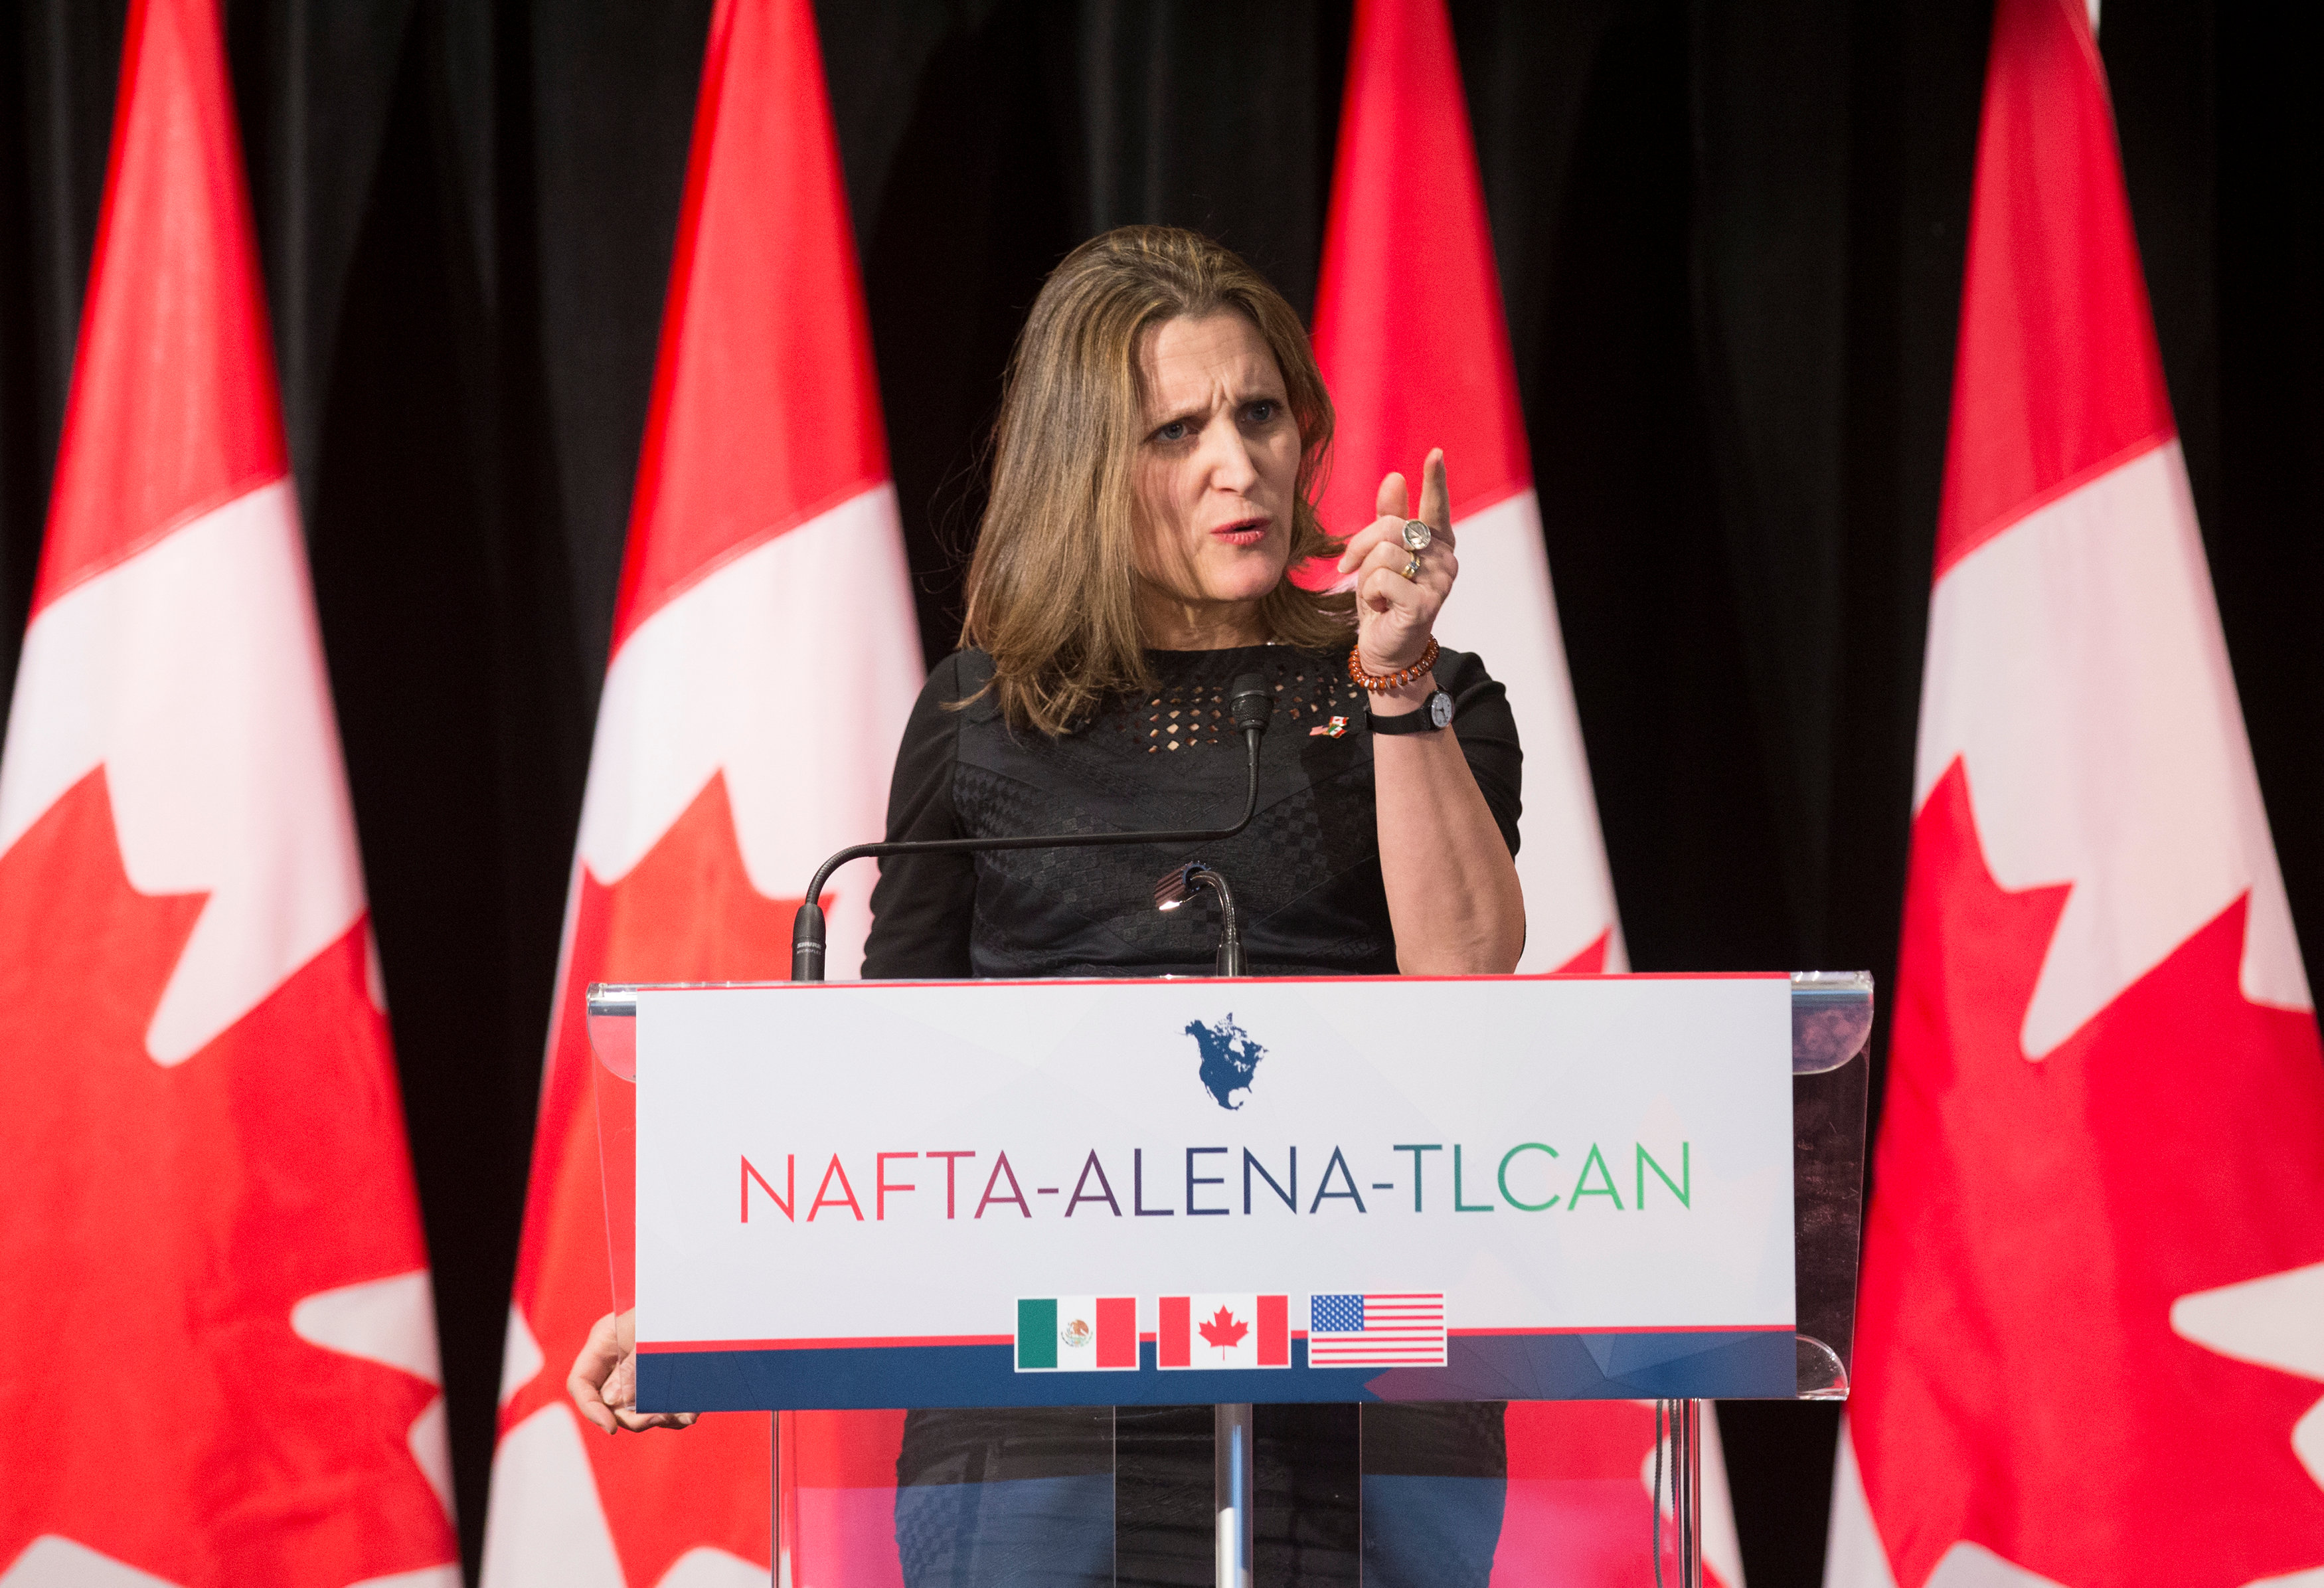 Chrystia Freeland, Canada's Minister of Foreign Affairs, speaks to the media following NAFTA round six renegotiations in Montreal, Quebec, Canada January 29, 2018. REUTERS/Christinne Muschi